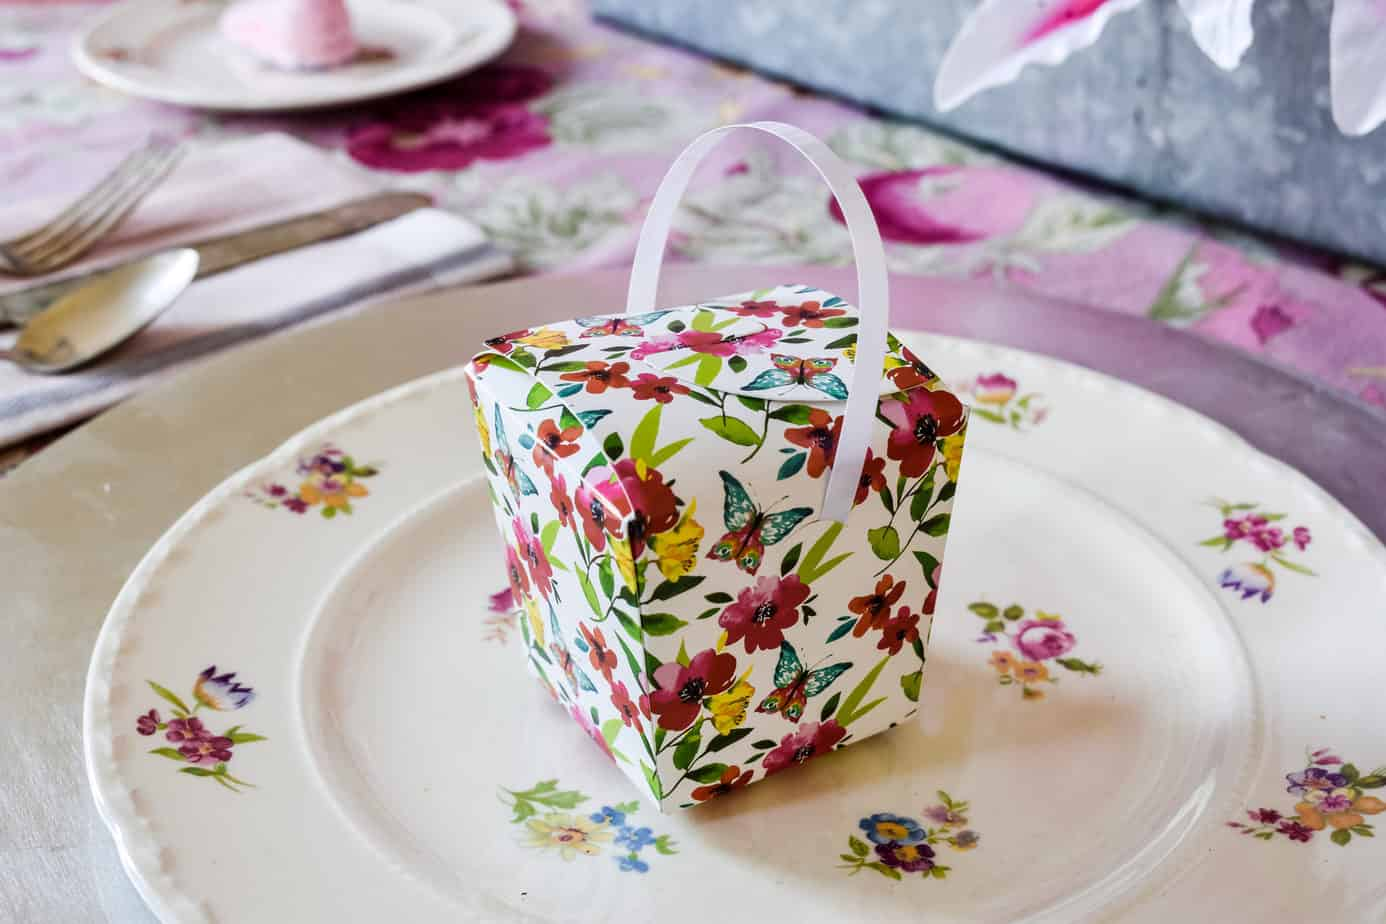 floral cardboard treat box from Dollar Tree on a floral dinner plate